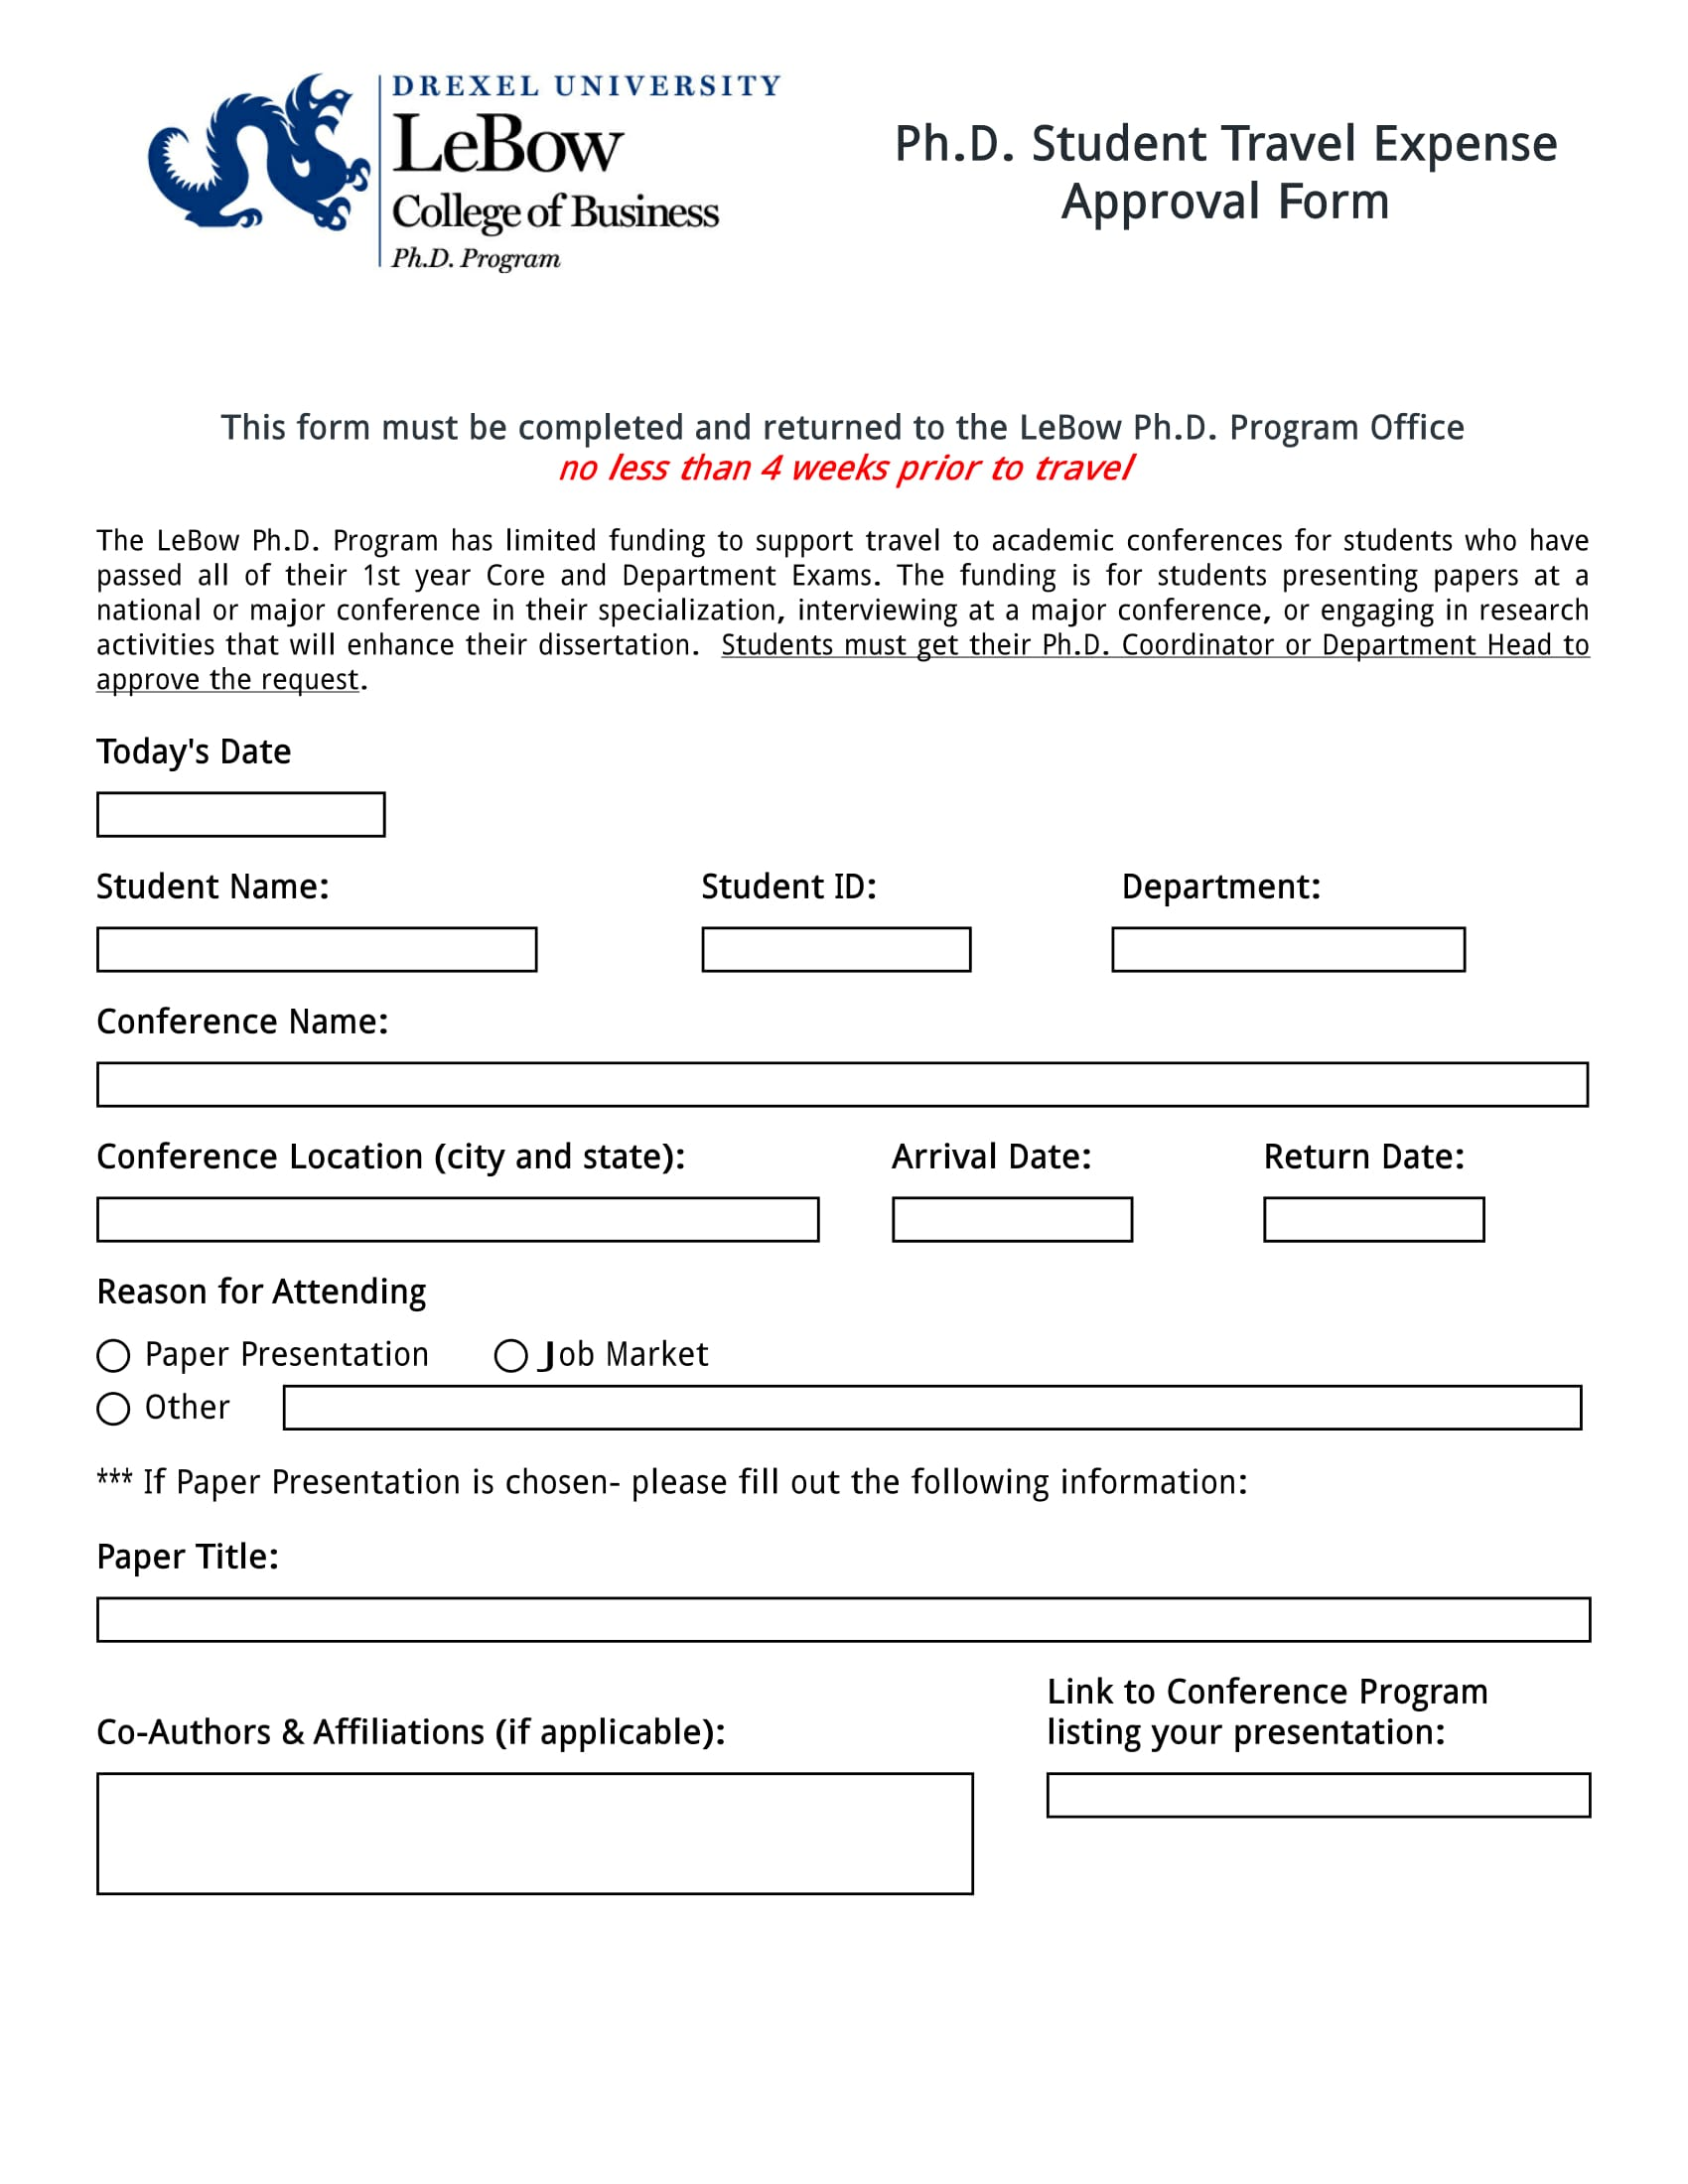 travel expense approval form 1